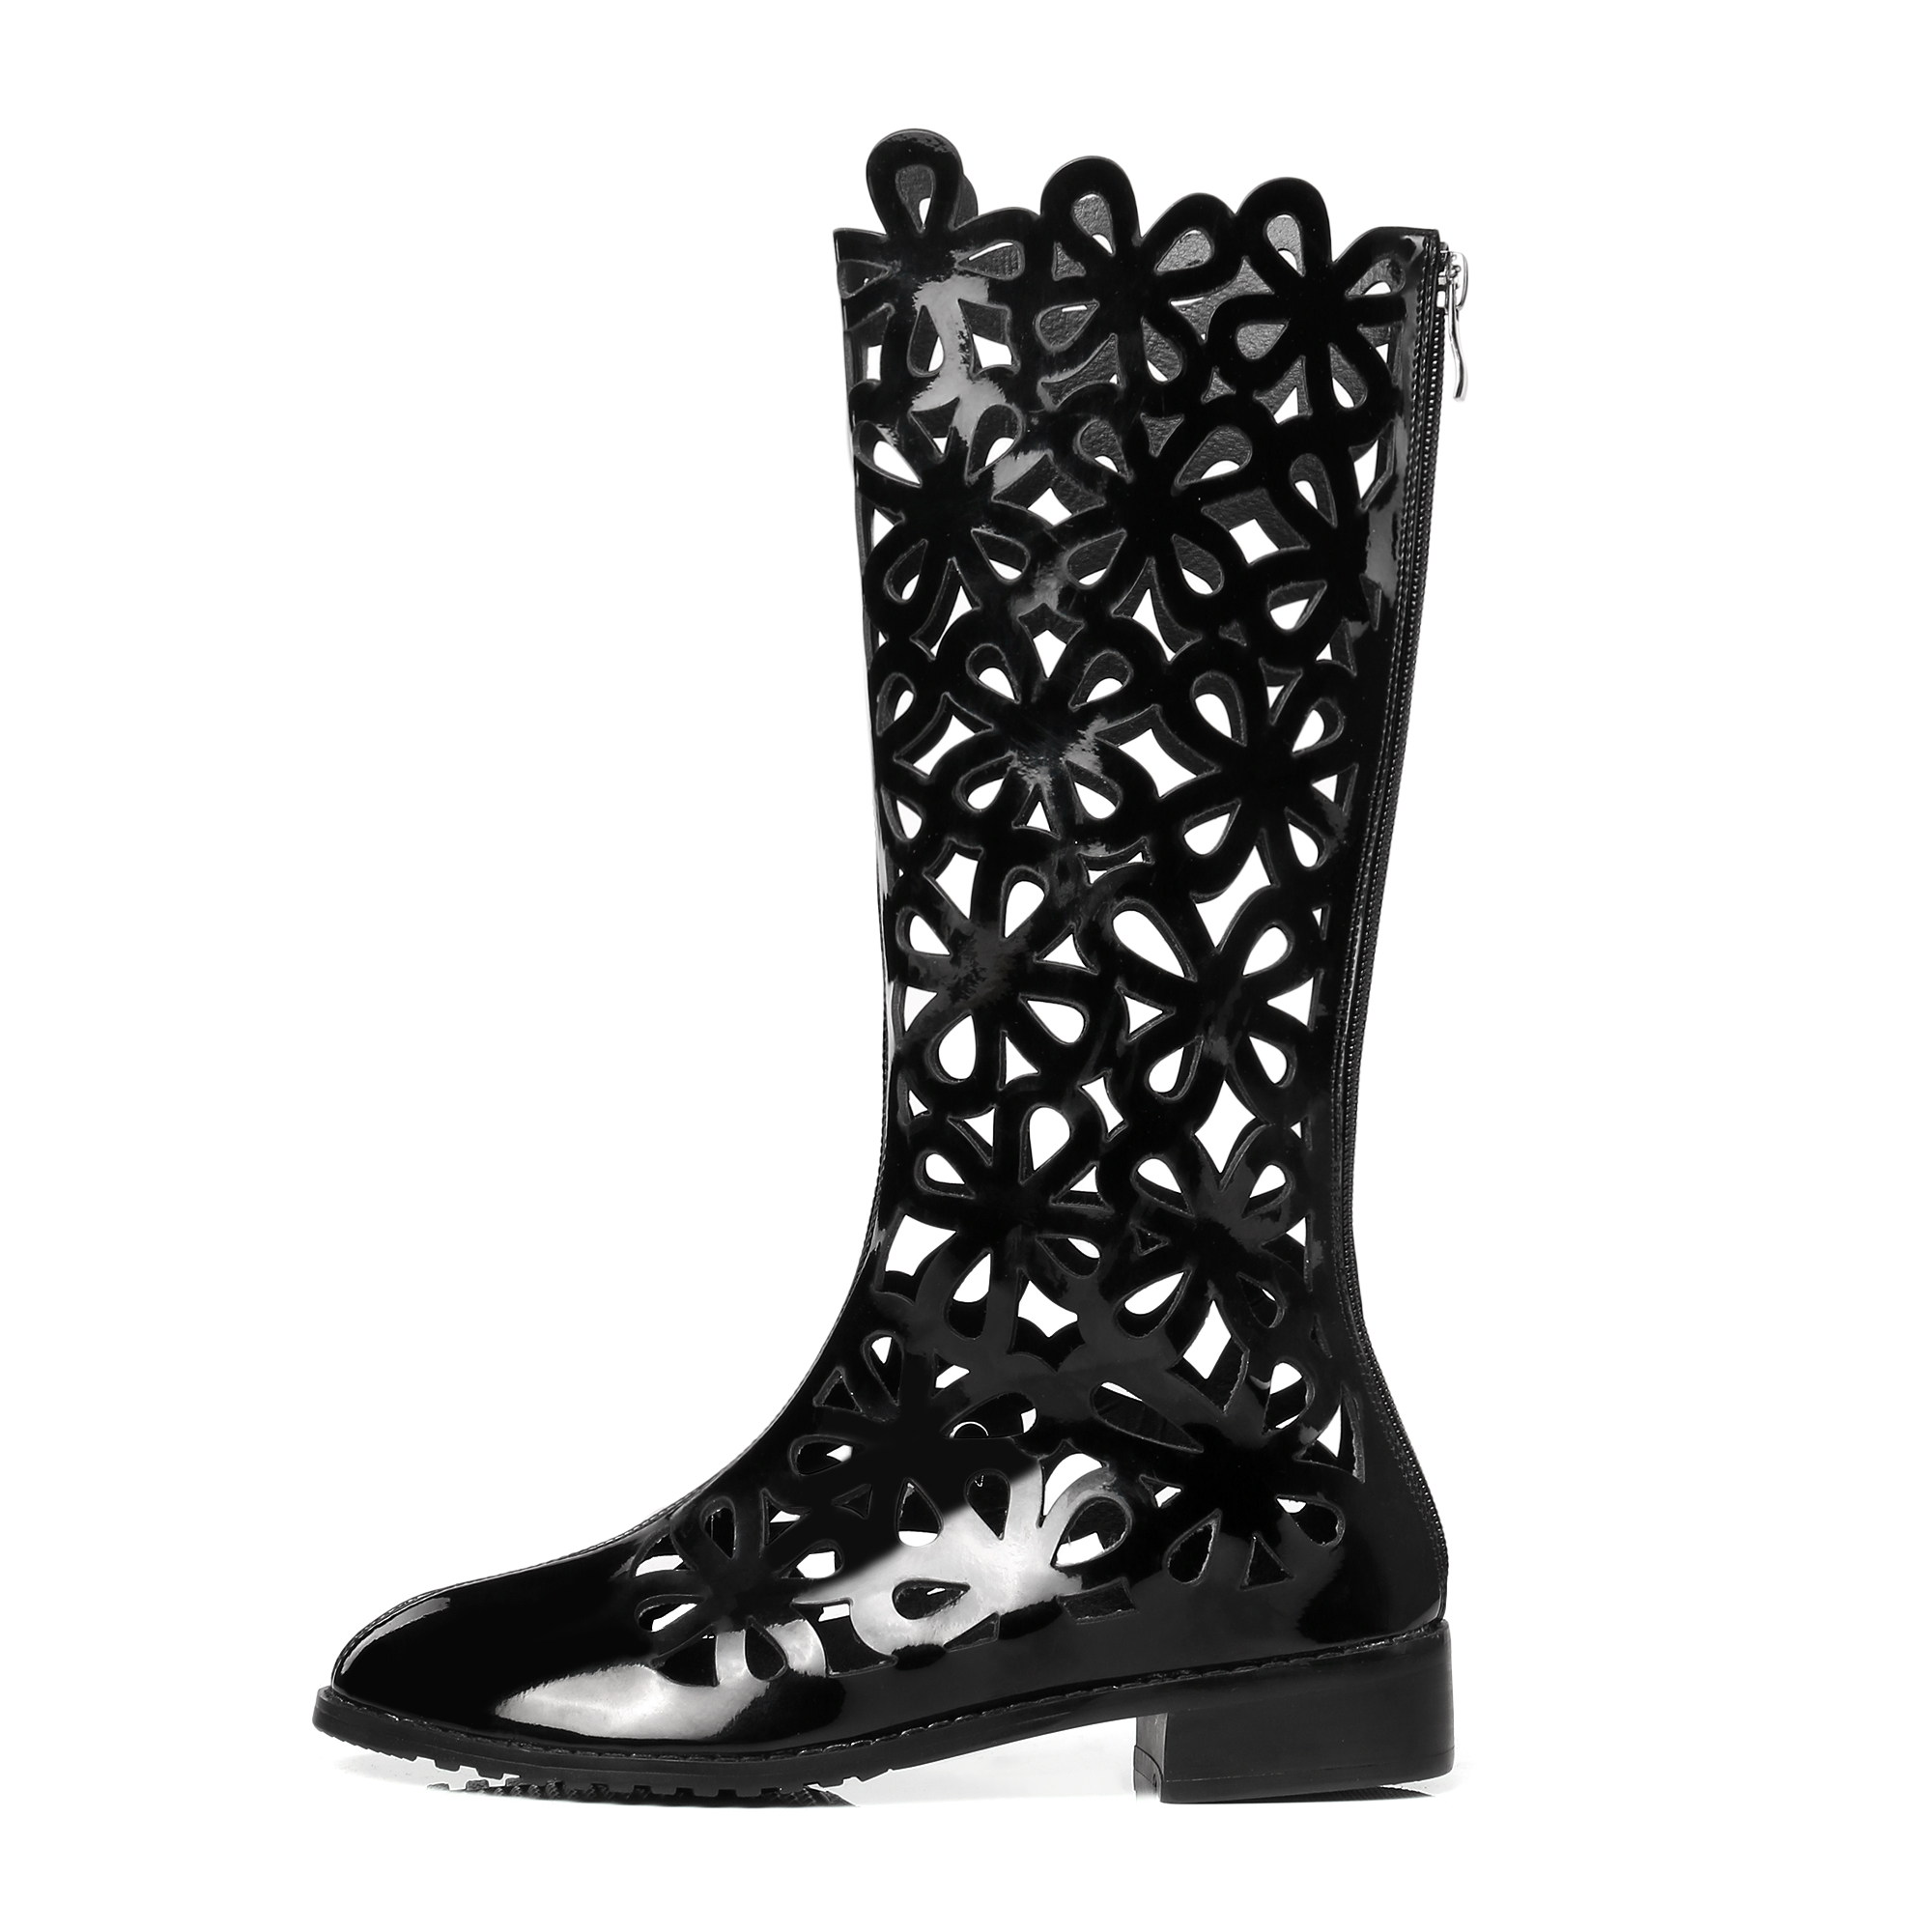 077d594d4ae US  55 - Arden Furtado 2018 spring summer casual fretwork gladiator zip knee  high boots big size small size flat summer boots shoes woman ...